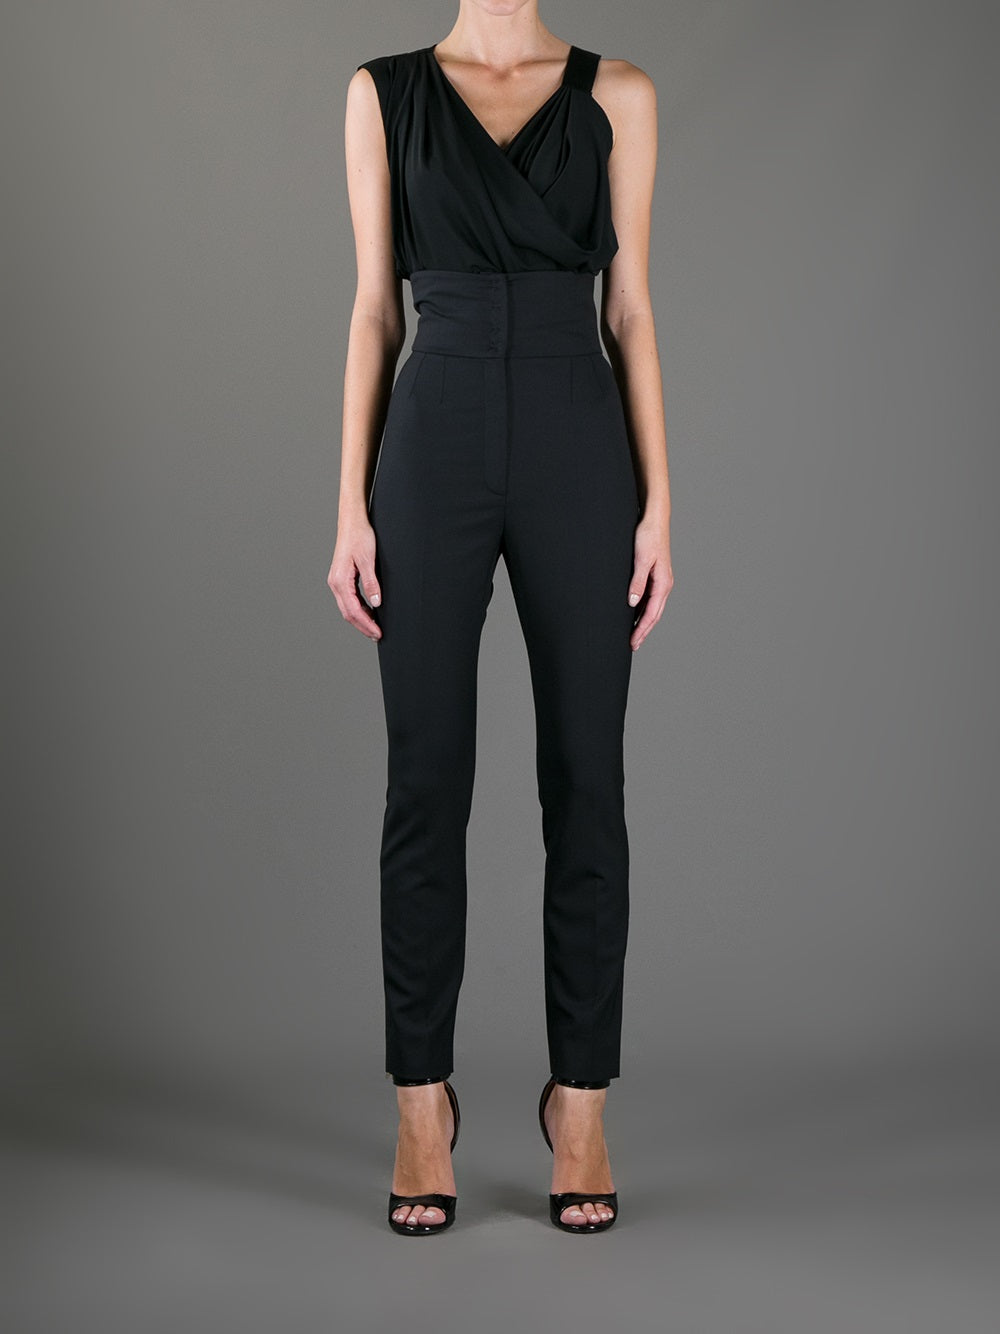 D&G High Waist Black Pants Size 42